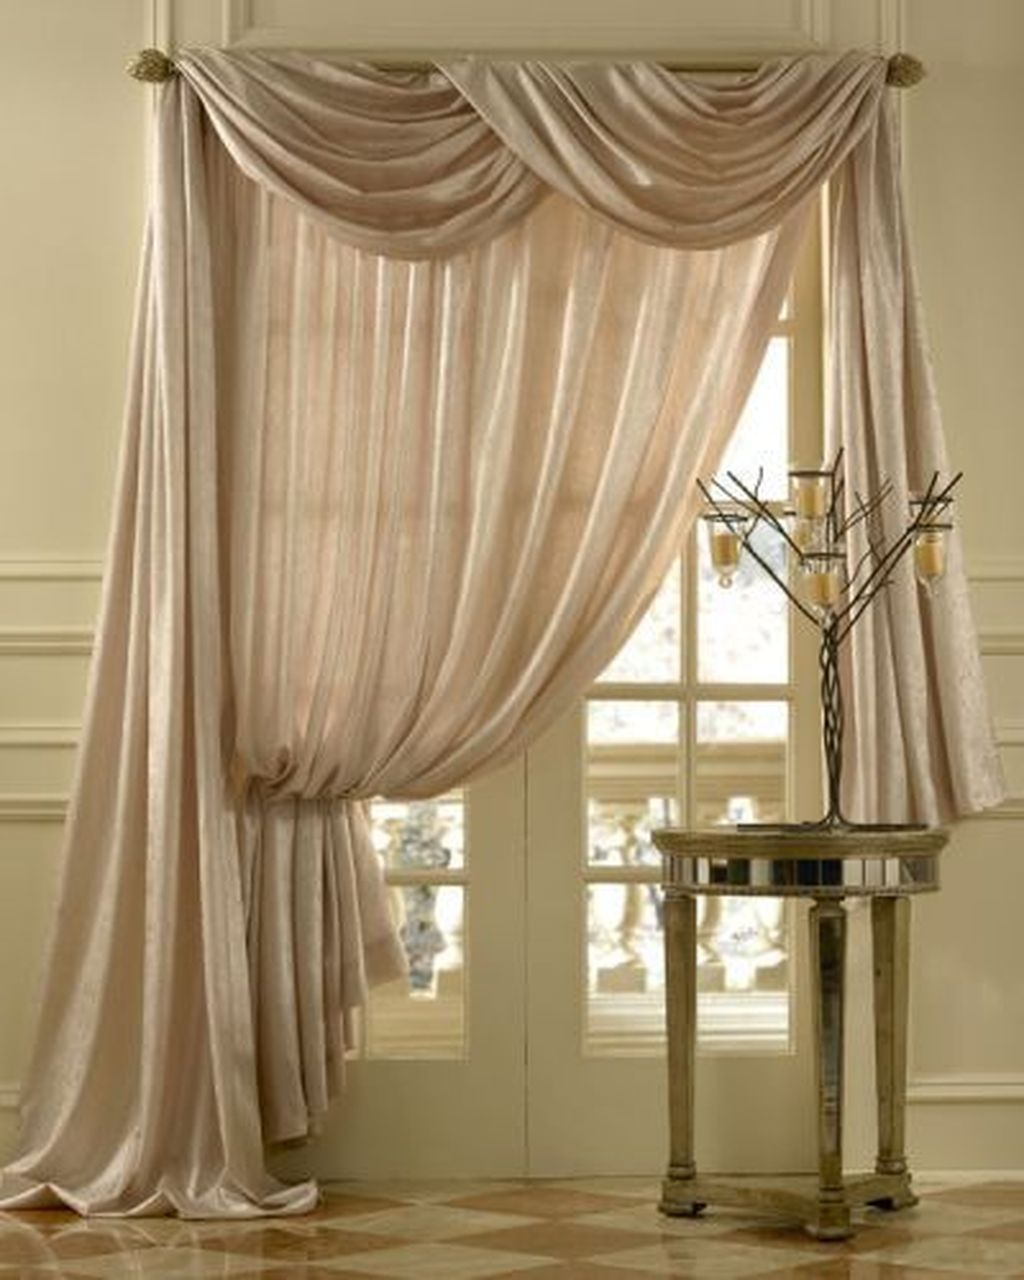 44 Beautiful Home Curtain Ideas For Your Interior Design To Looks Elegant Trendehouse Home Curtains Home Decor Home #scarf #valances #for #living #room